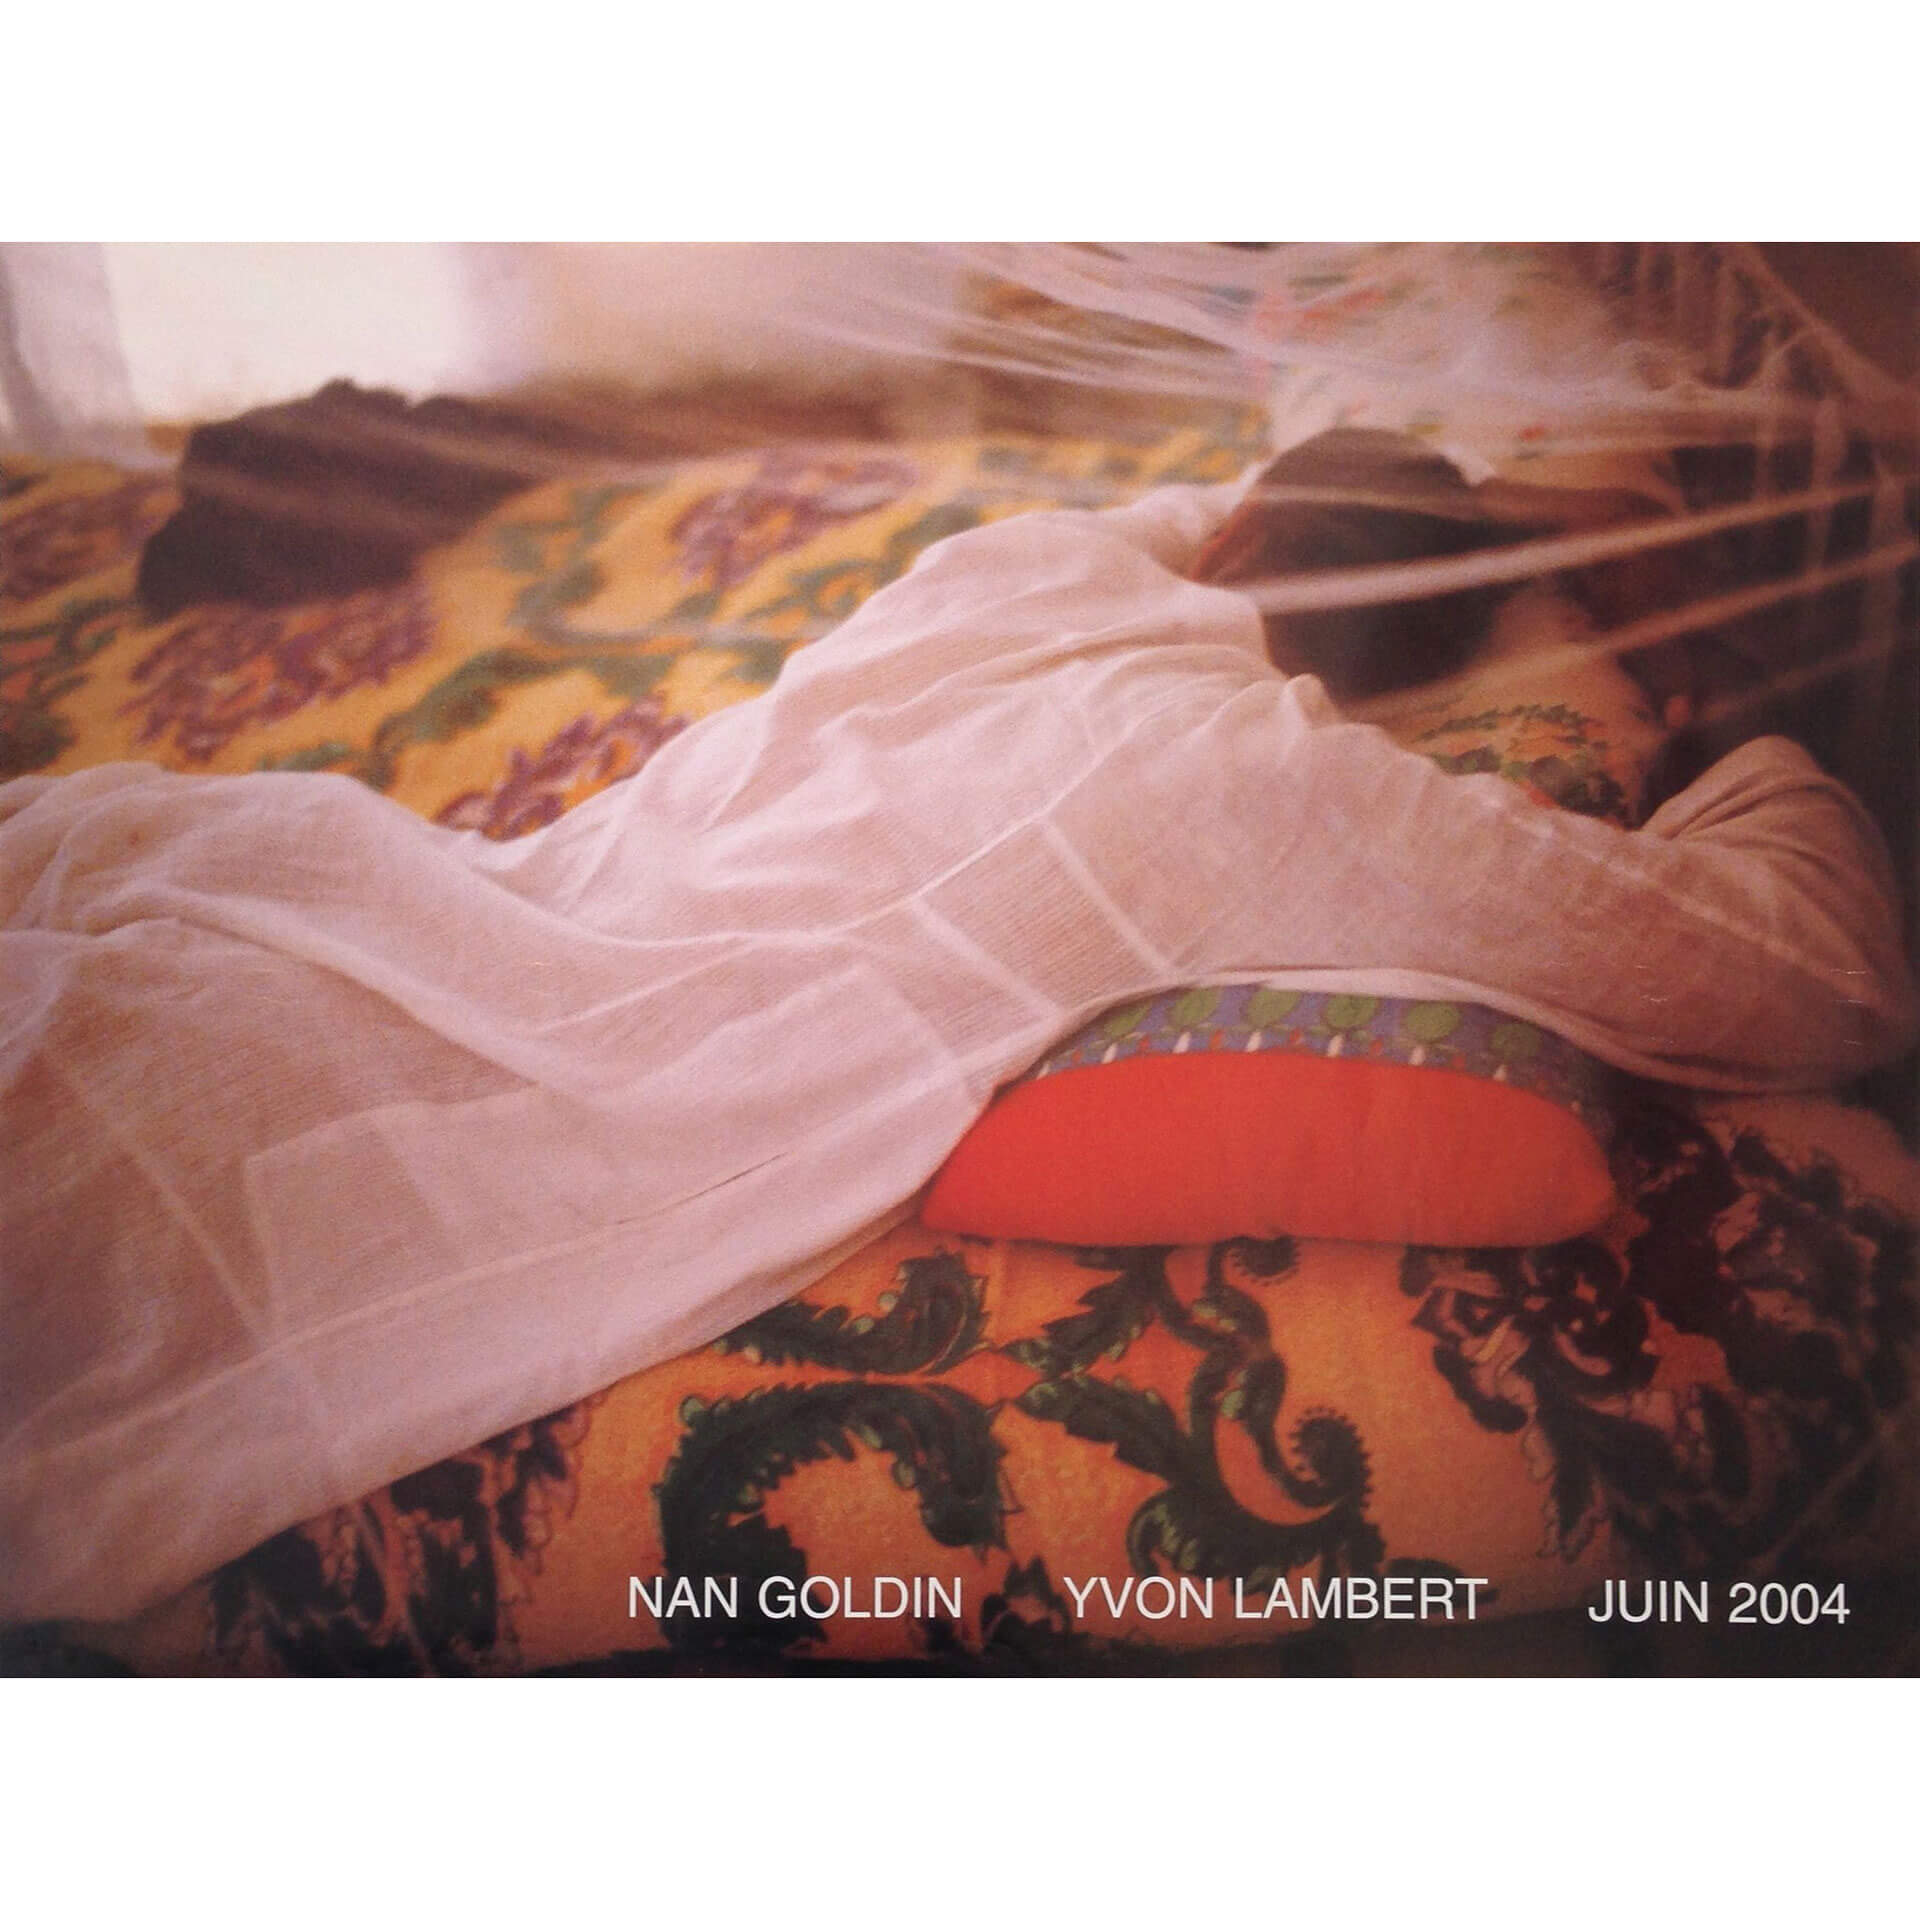 Nan Goldin Exhibition Poster 2004